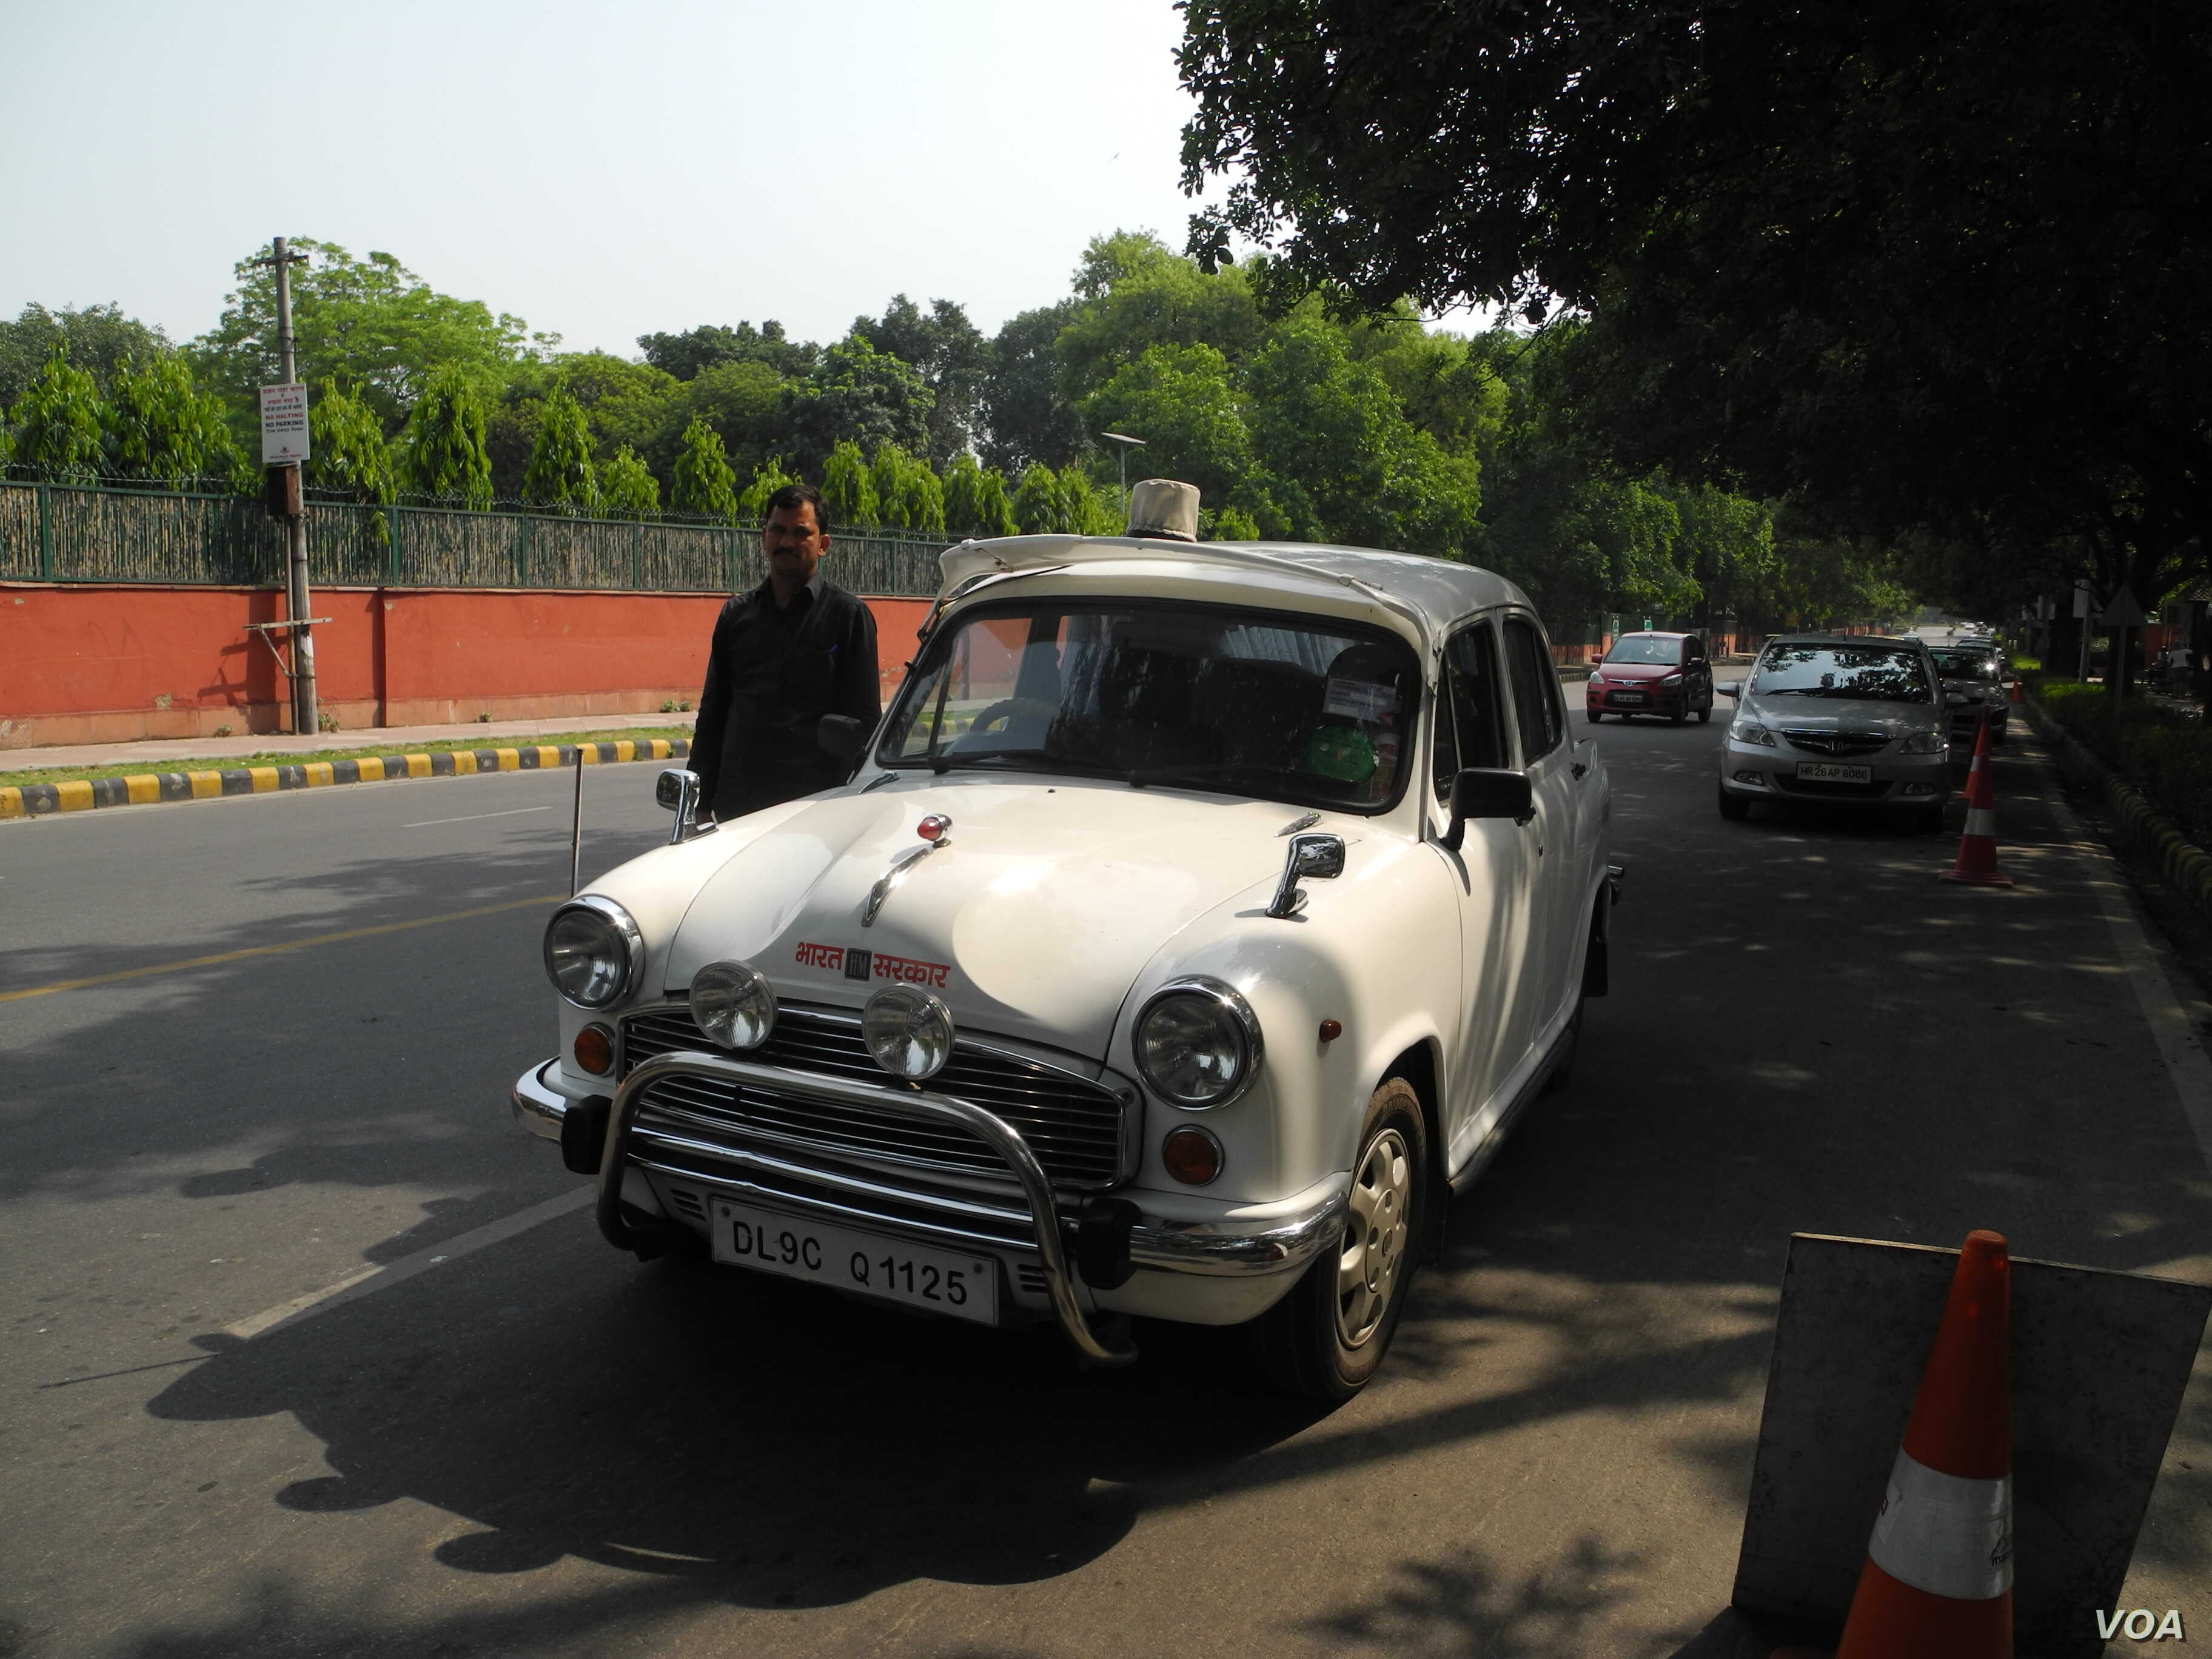 Production of India's Iconic Ambassador Car Halted | Voice